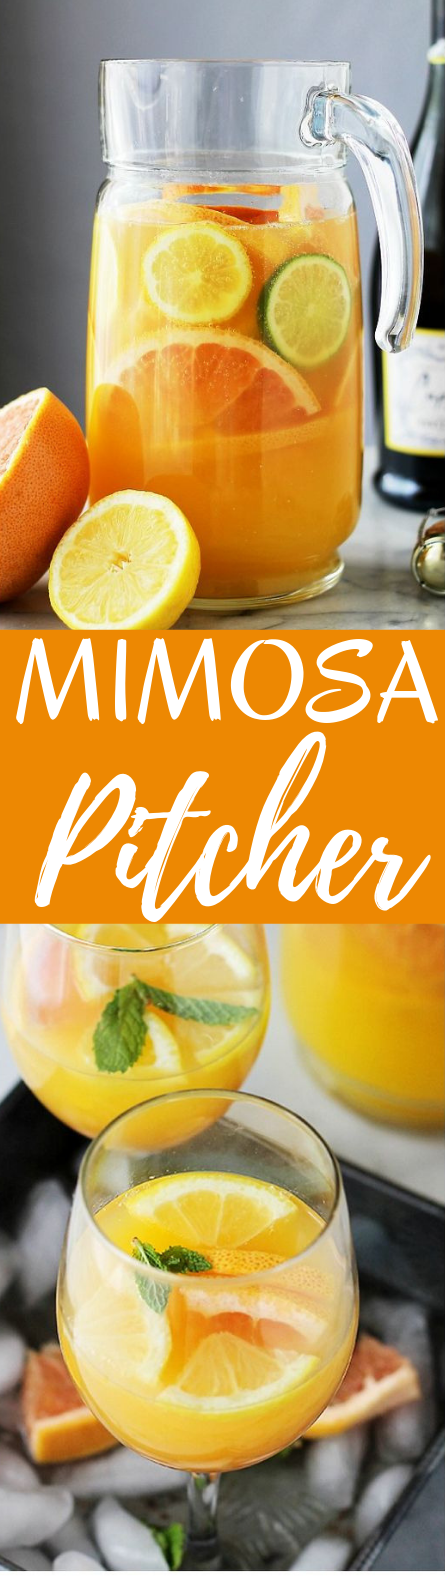 Mimosa Pitcher Cocktail #drinks #party